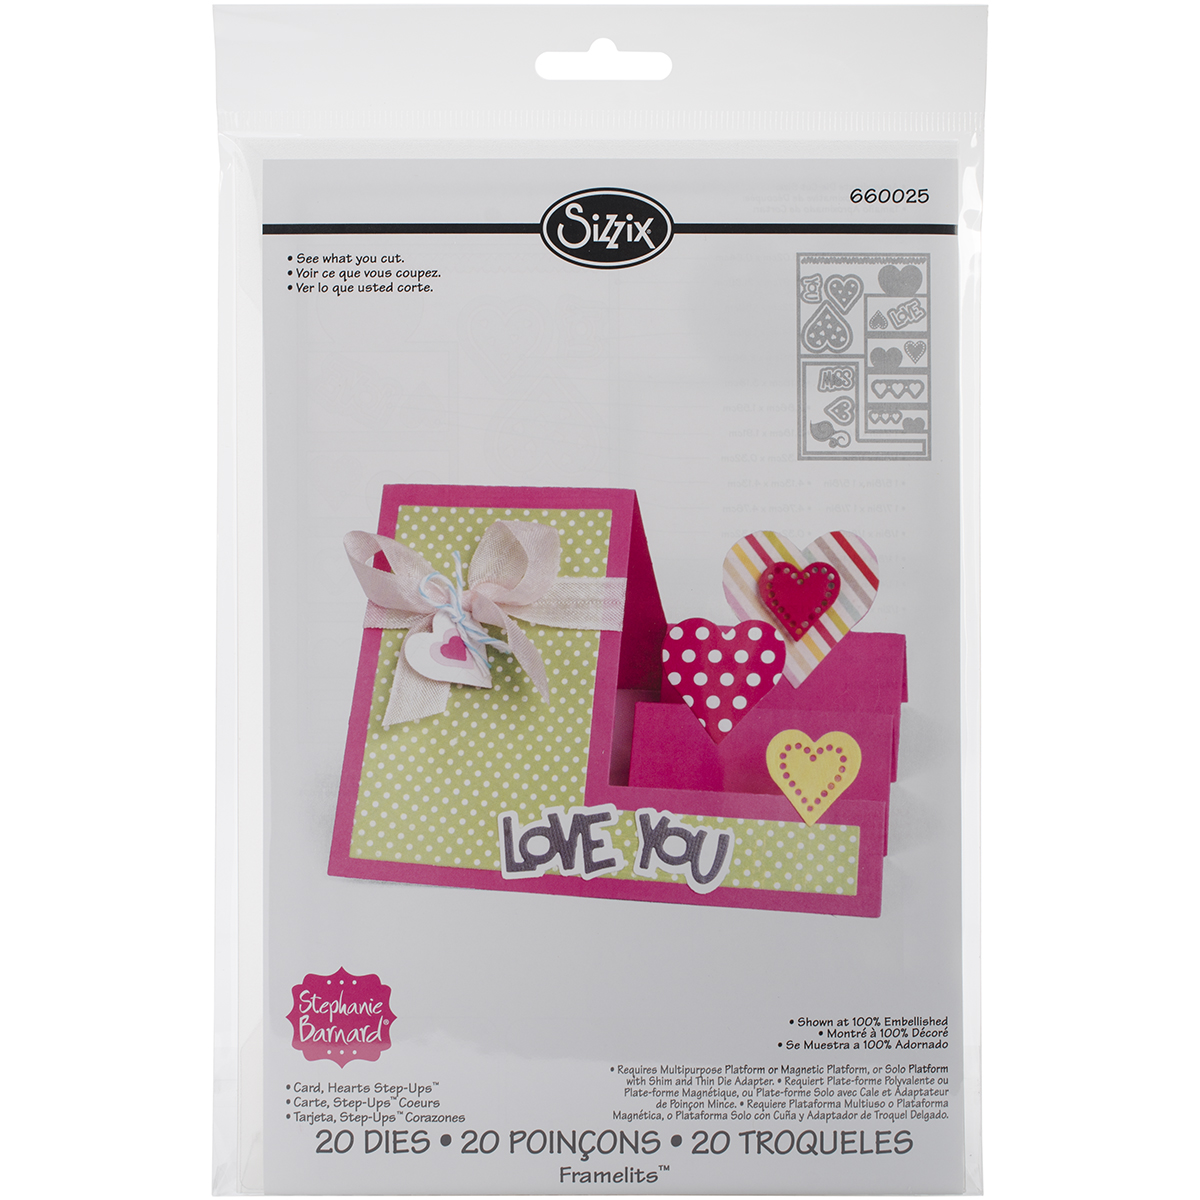 Sizzix Hearts Step-Up Card Framelits Dies by Stephanie Barnard, 20-Pack Multi-Colored